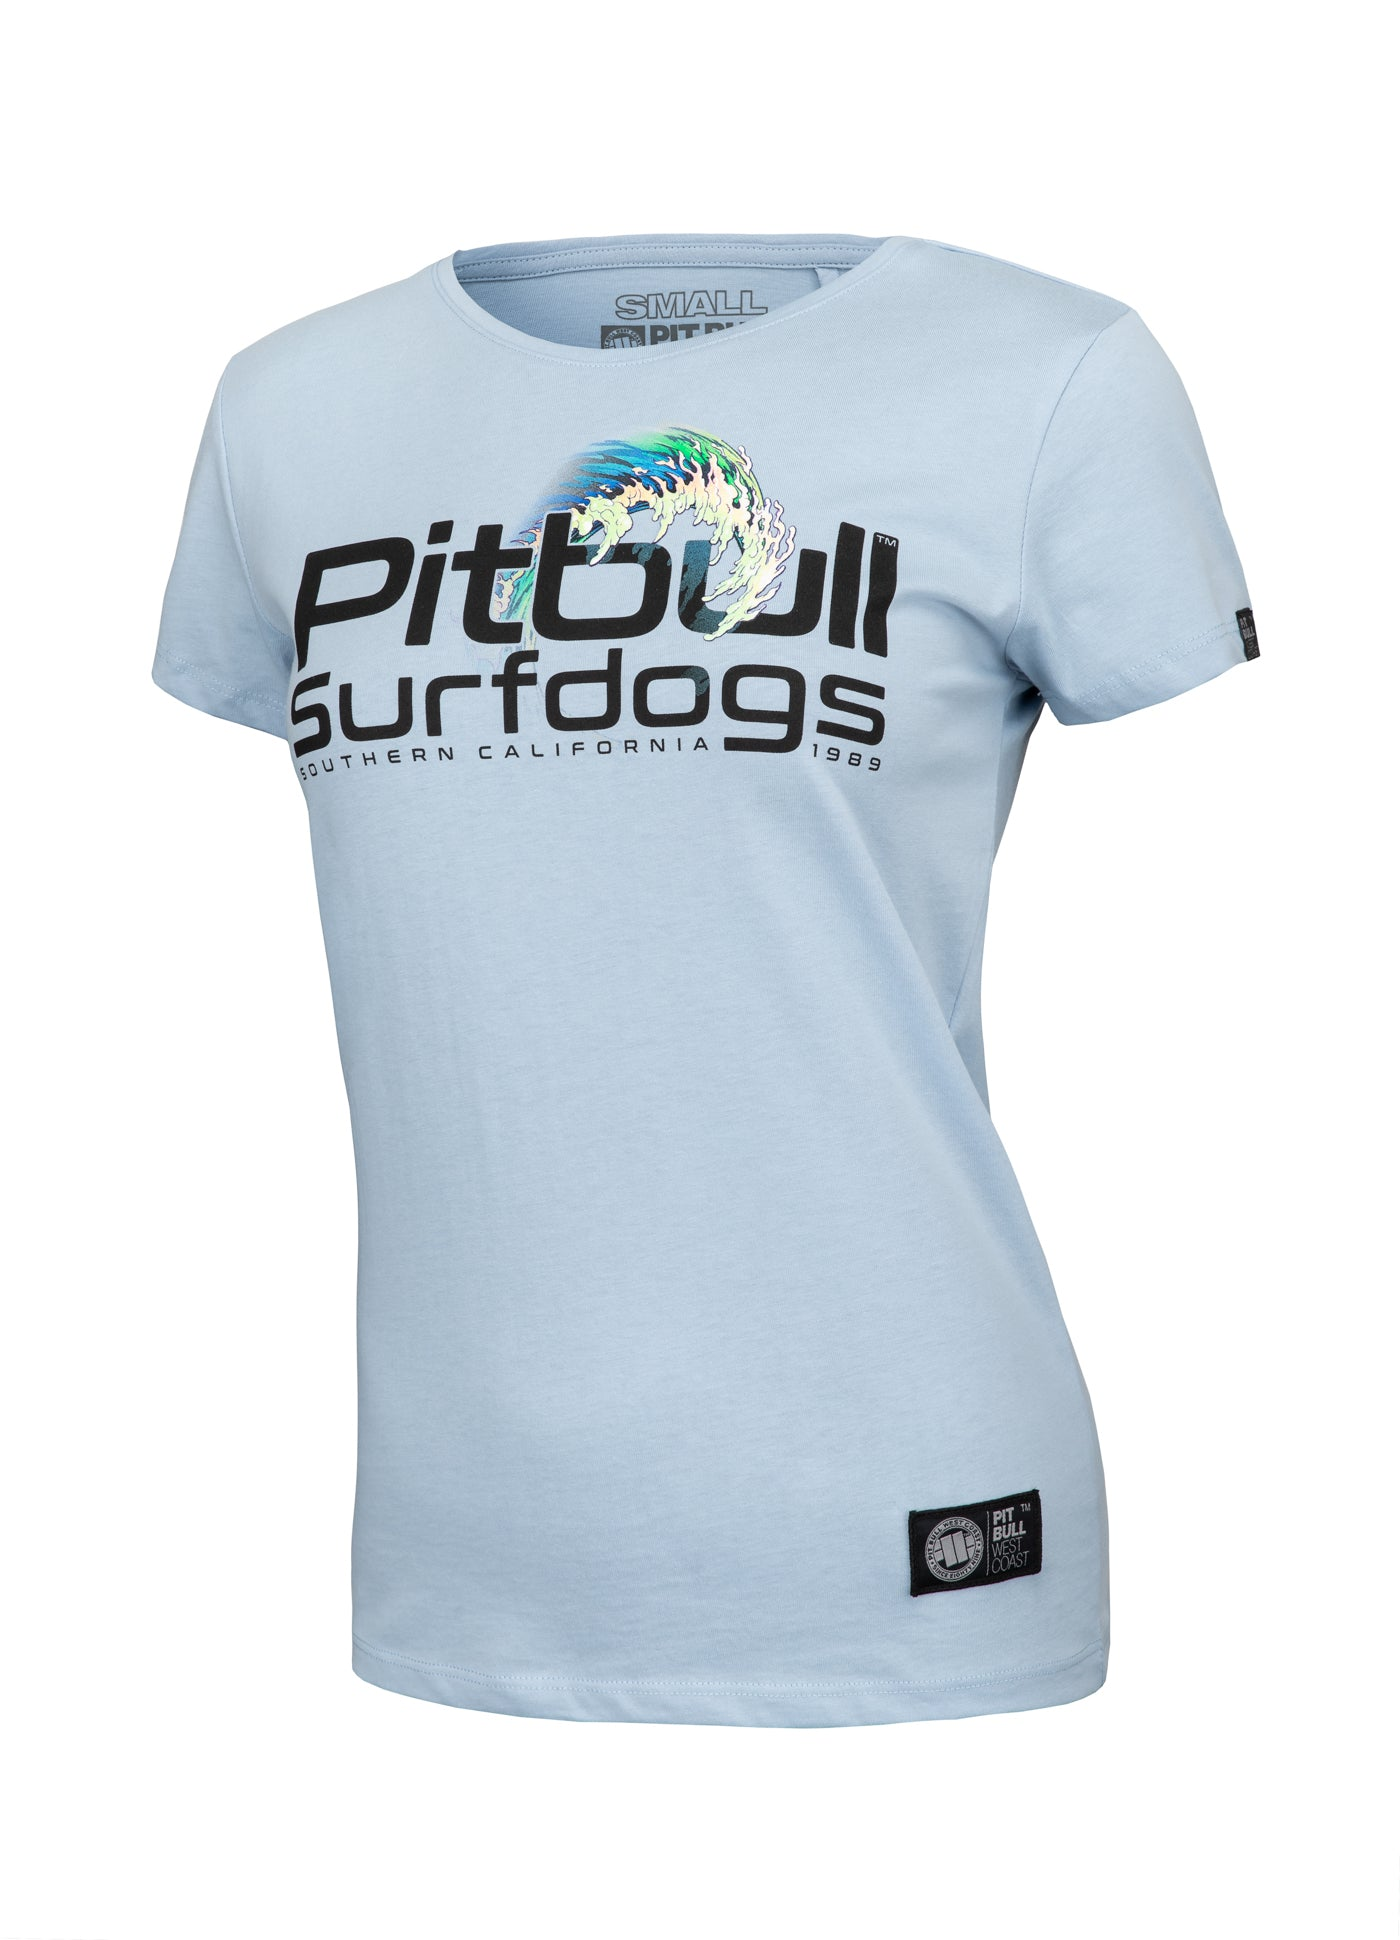 Women's T-shirt CAMINO Light Blue - pitbullwestcoast